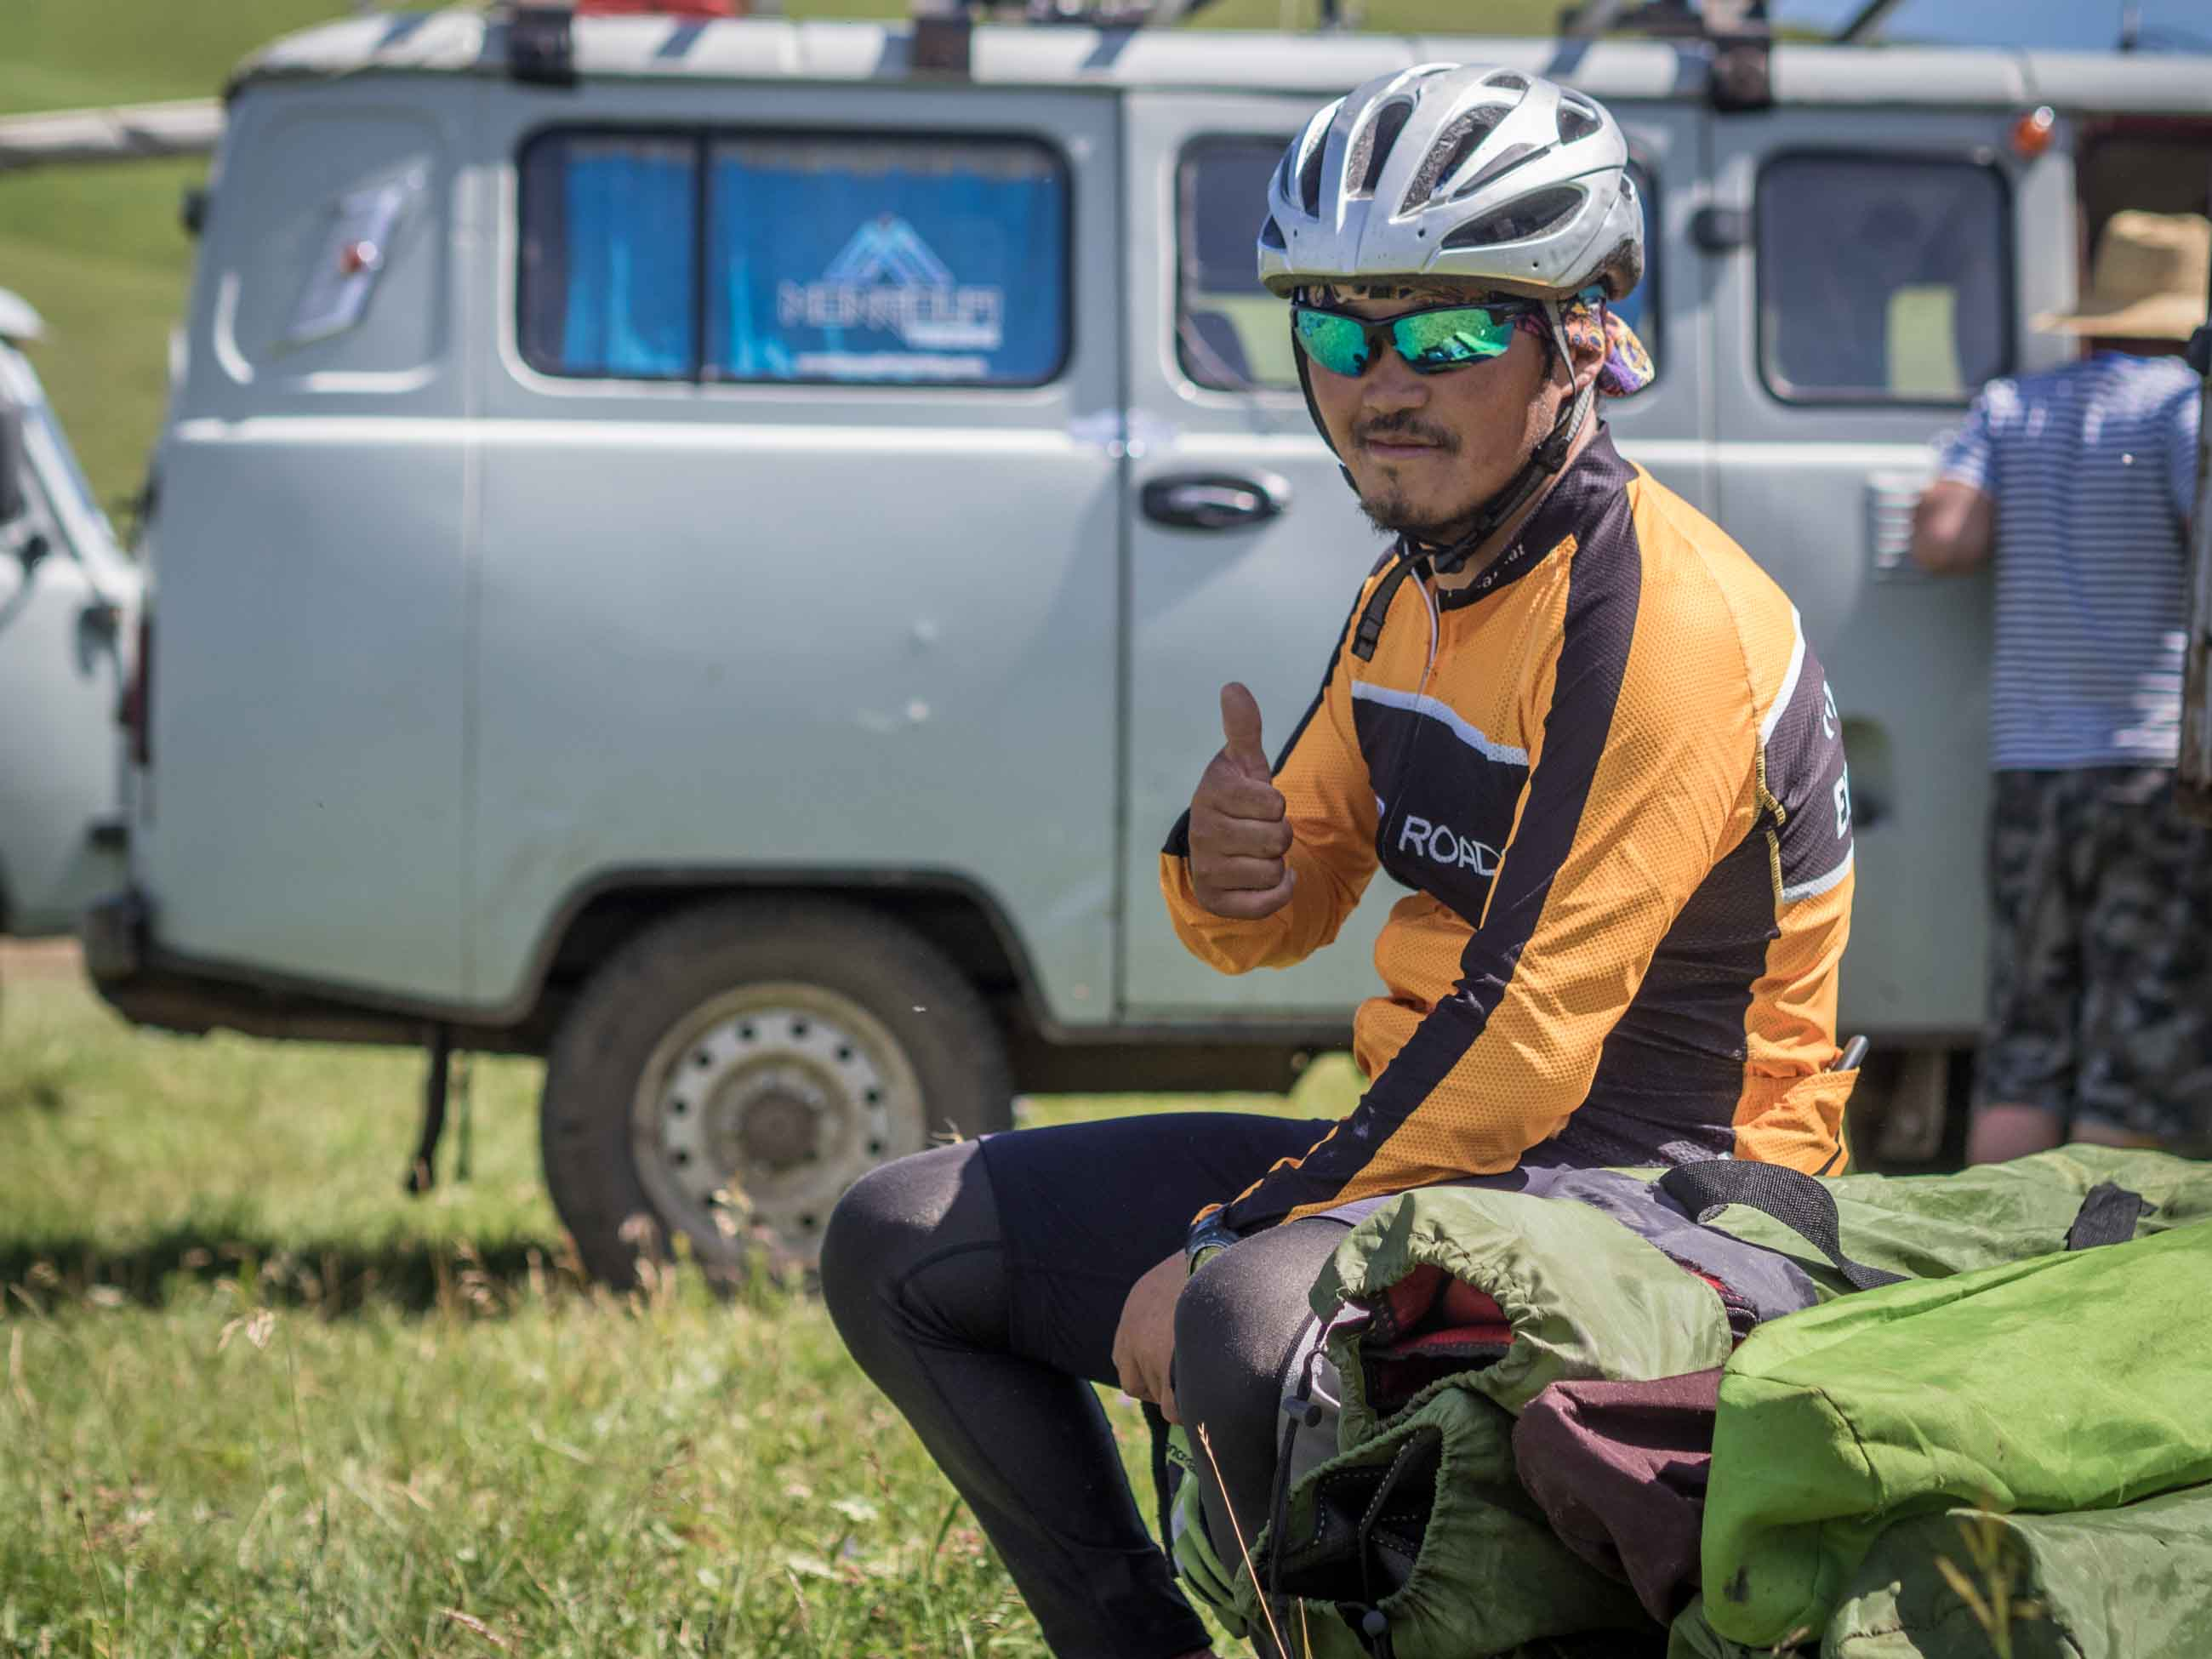 Mongolian cycling tour guide